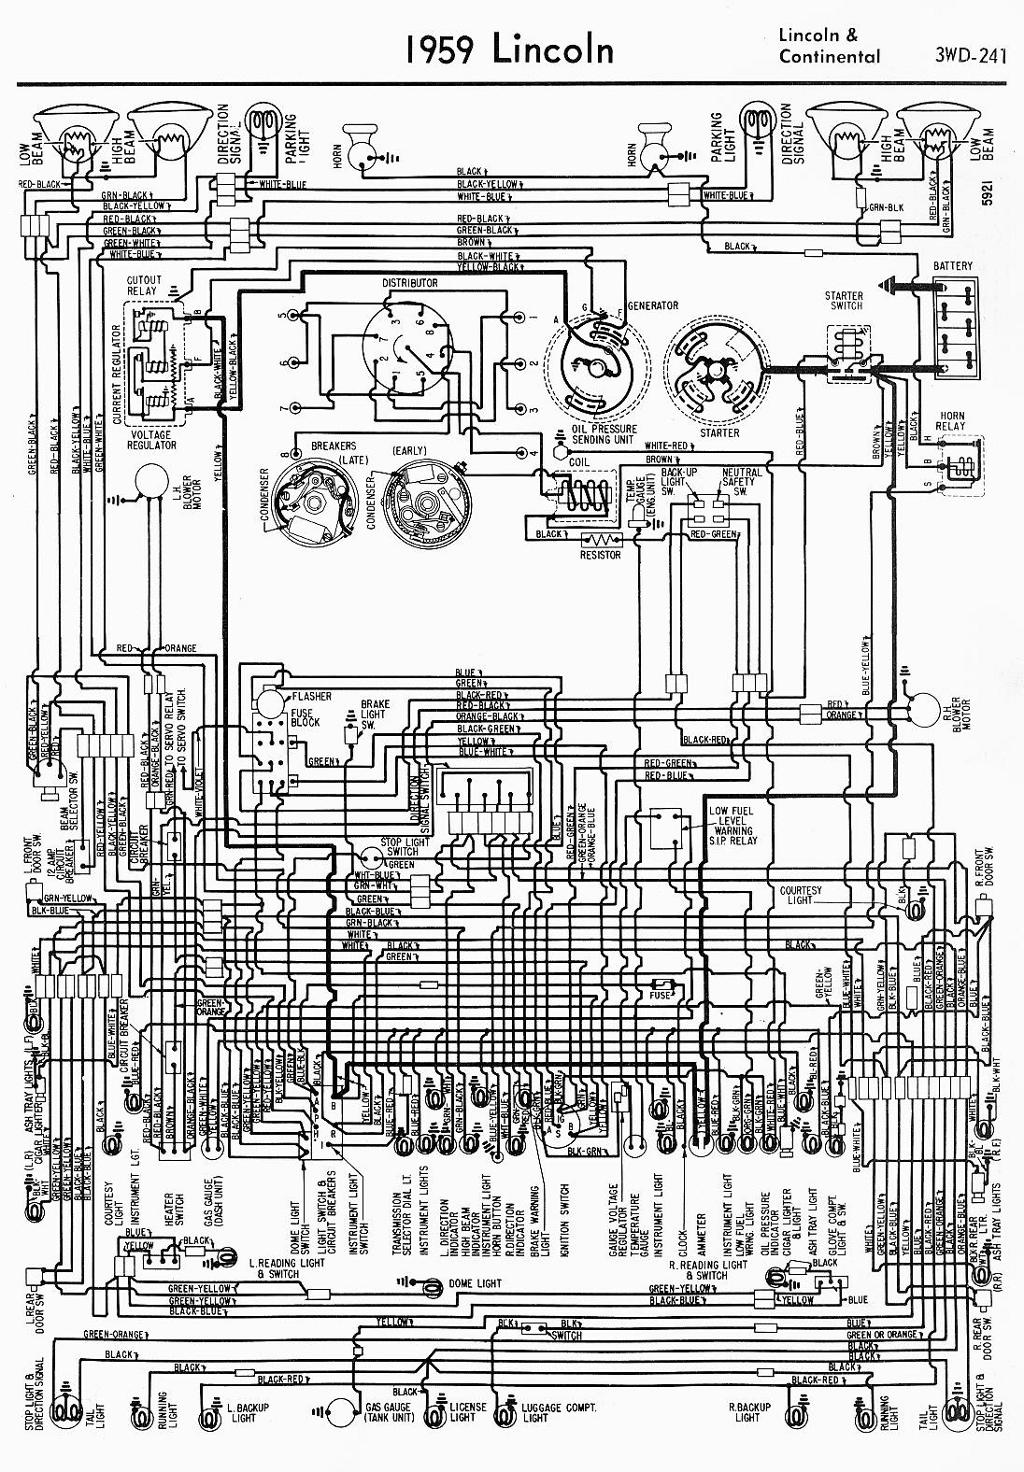 lincoln car manuals wiring diagrams pdf fault codes rh automotive manuals net